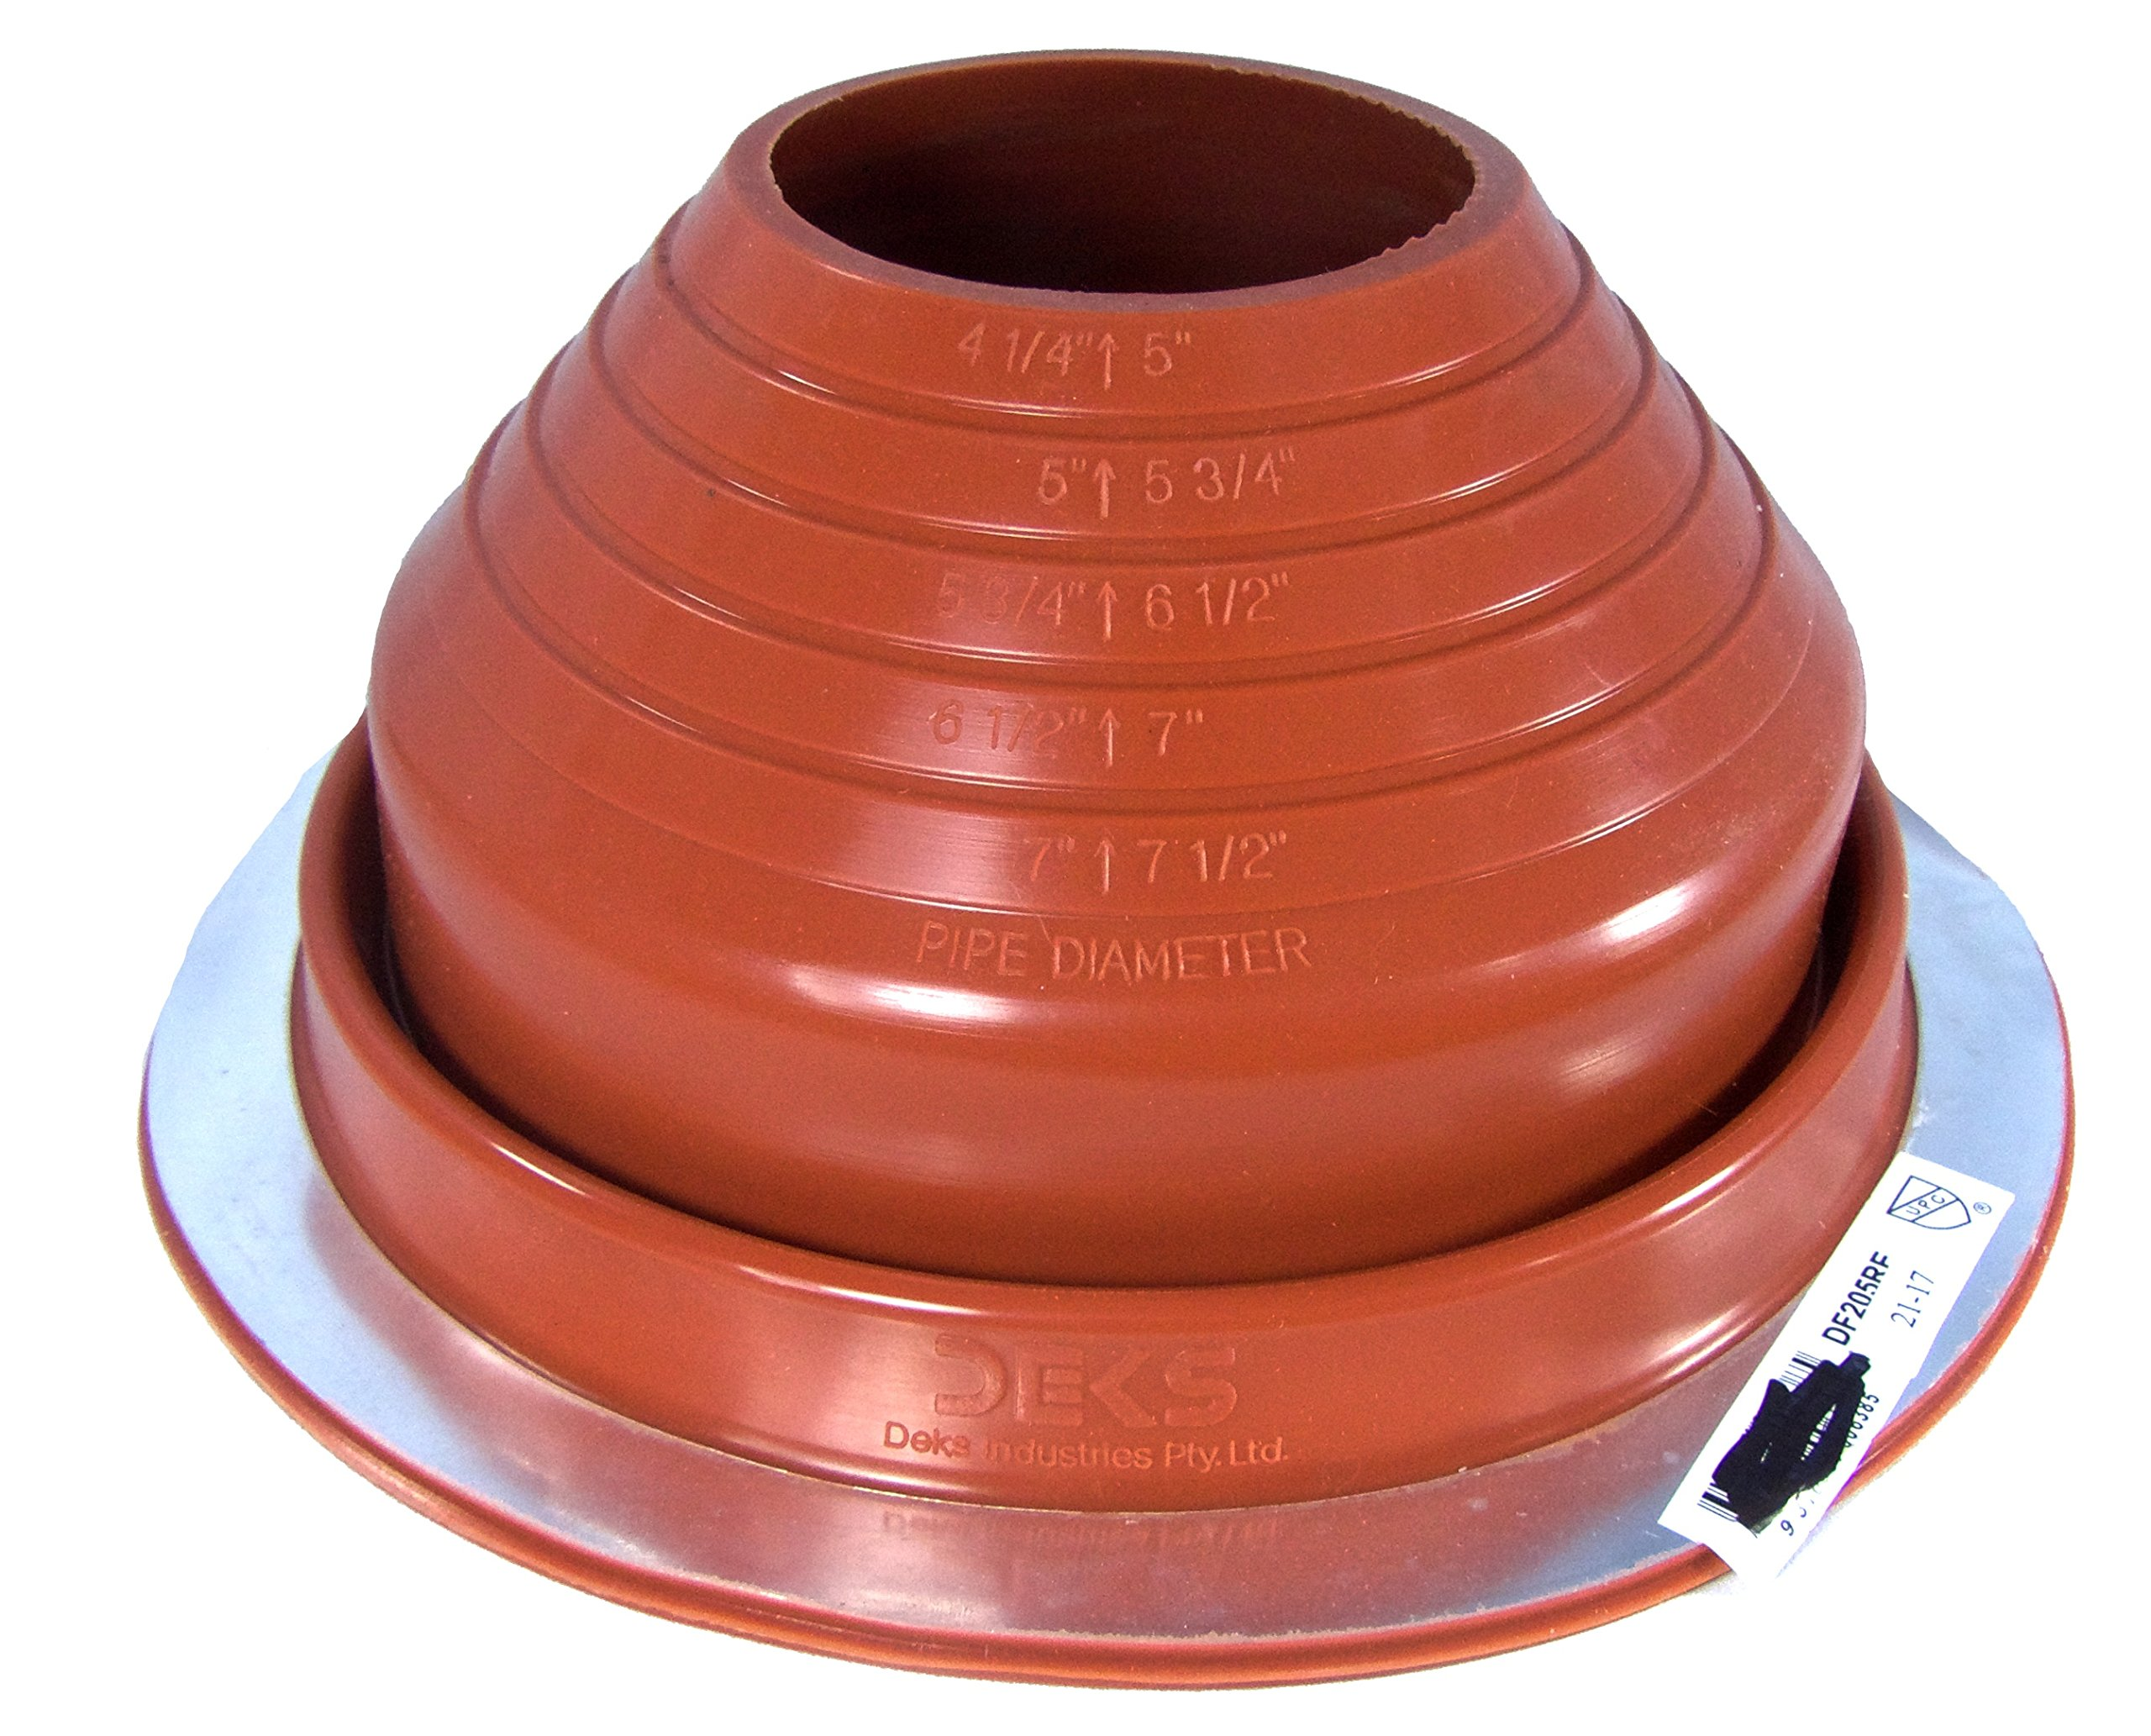 (DF205RE) #5 RED Round High Temp Silicone Flexible Pipe Flashing Dektite fits OD pipe sizes 4'' - 7'' Metal Roof Jack Pipe Boot - Metal Roofing Pipe Flashing